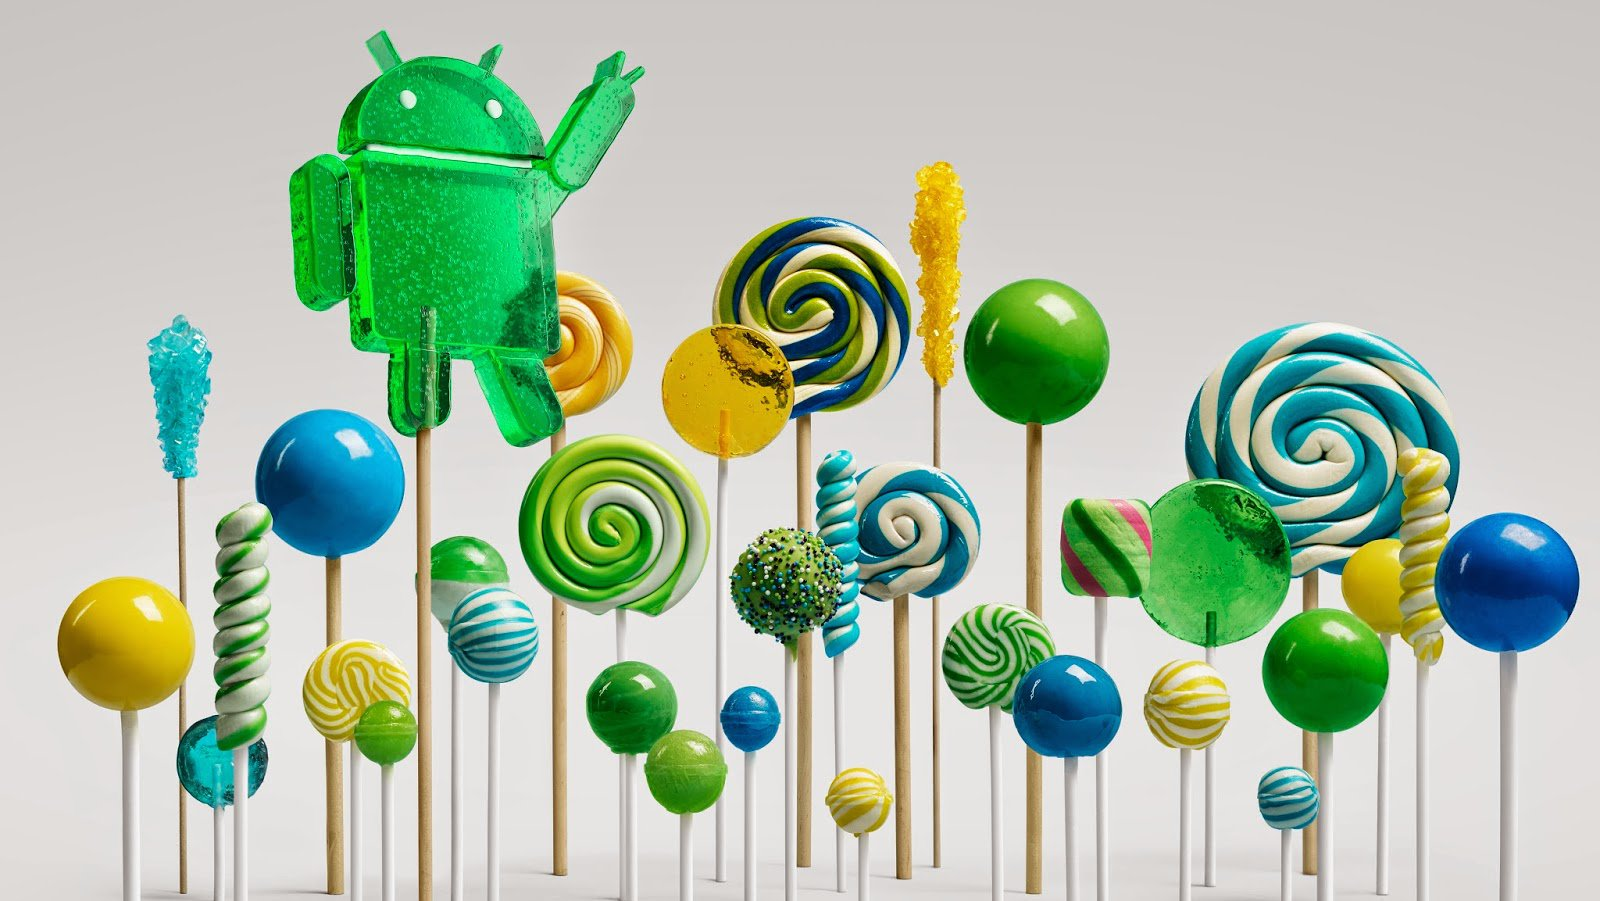 Google Announced Android 5.0 Lollipop, Nexus 6 And Nexus 9